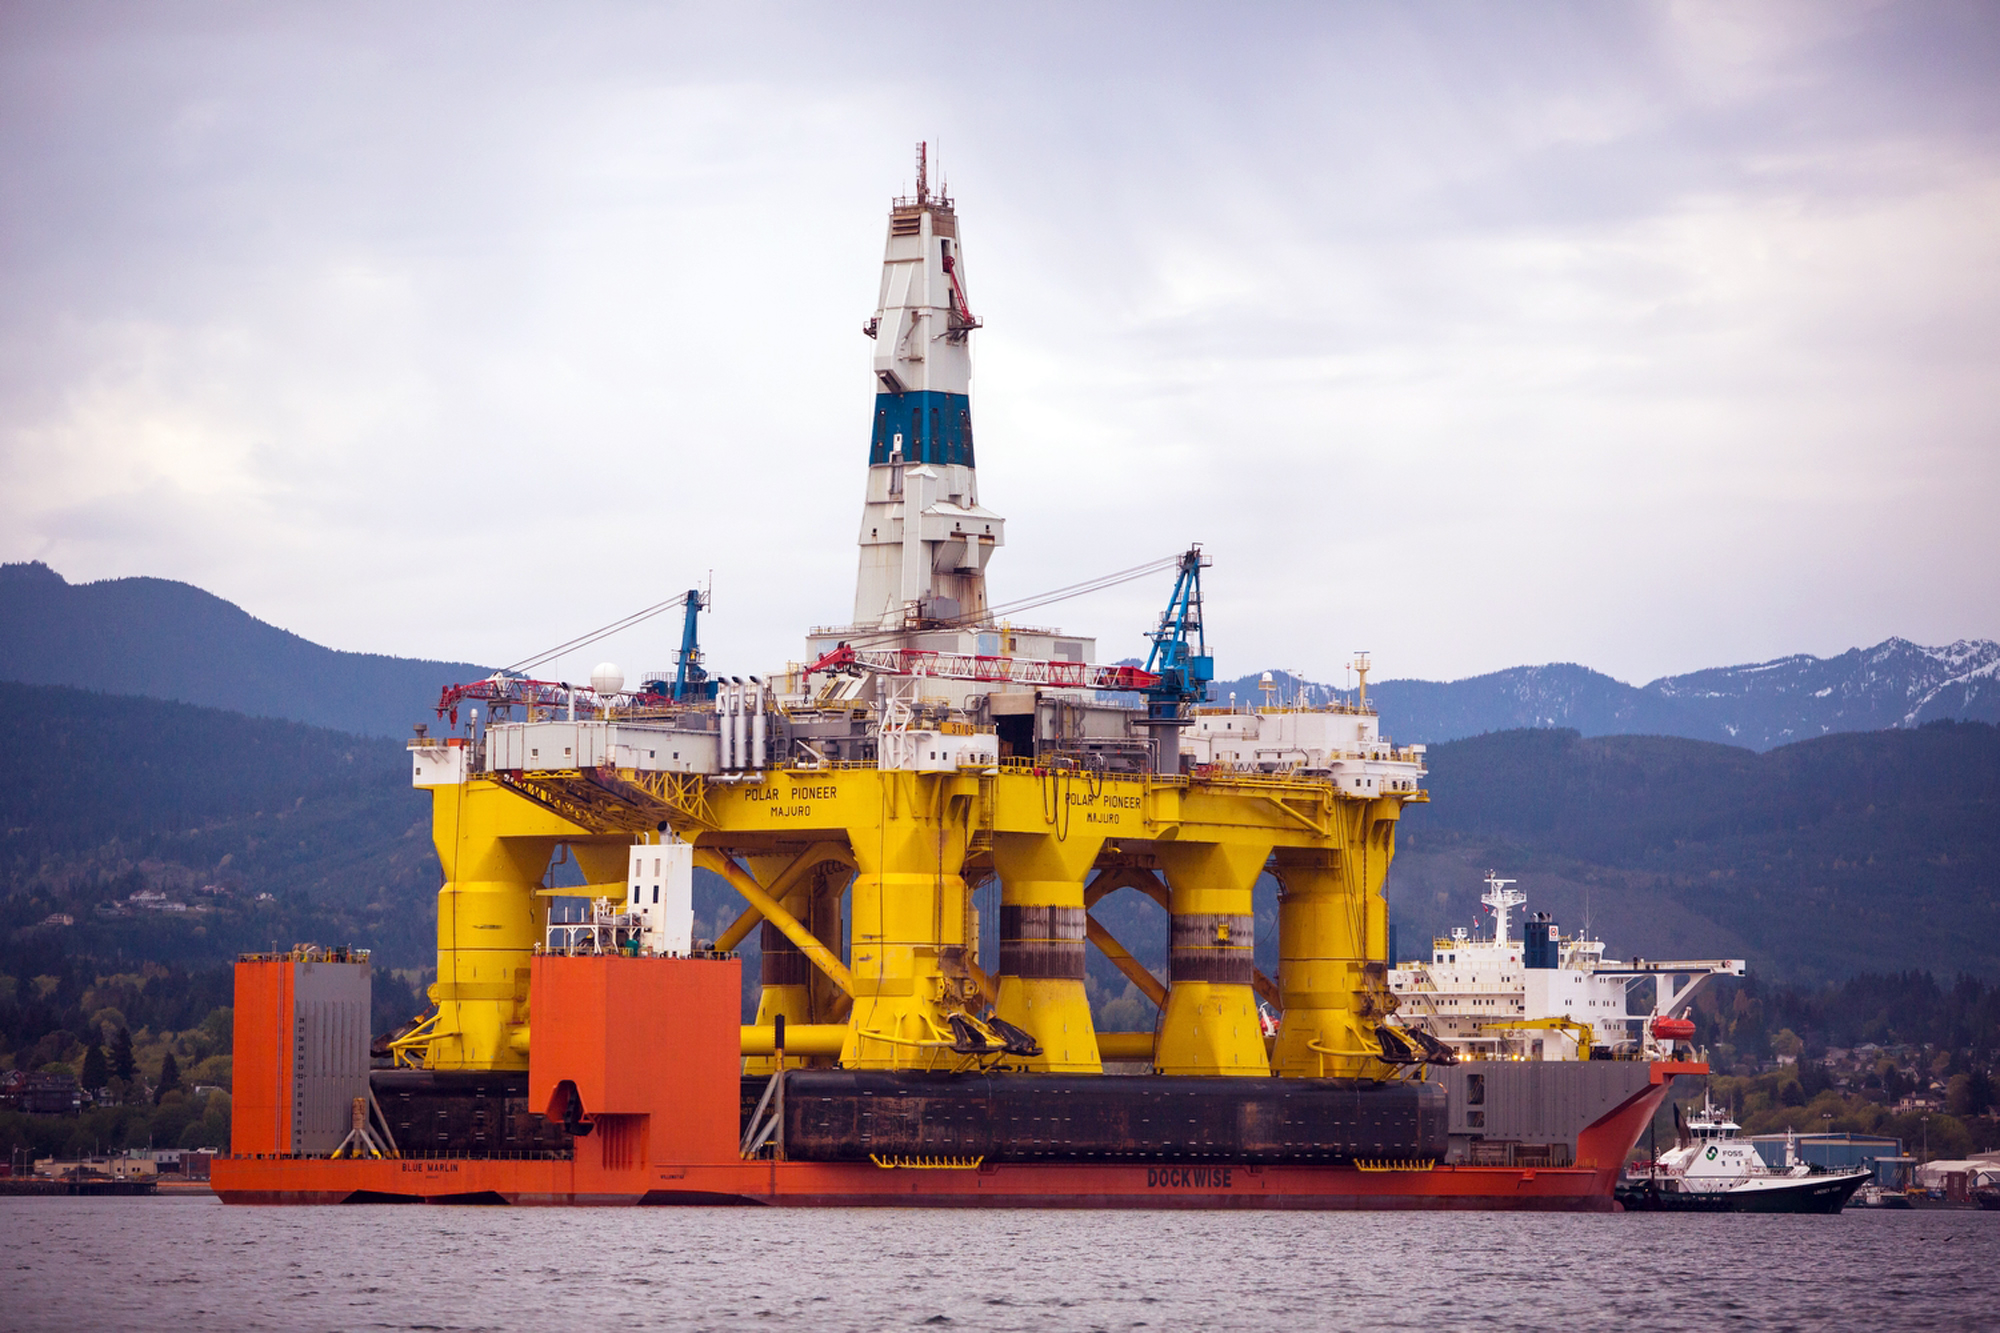 oil drilling in the arctic After plunking down more than $25 billion for drilling rights in us arctic waters, royal dutch shell plc, conocophillips and other companies have quietly relinquished claims they once.